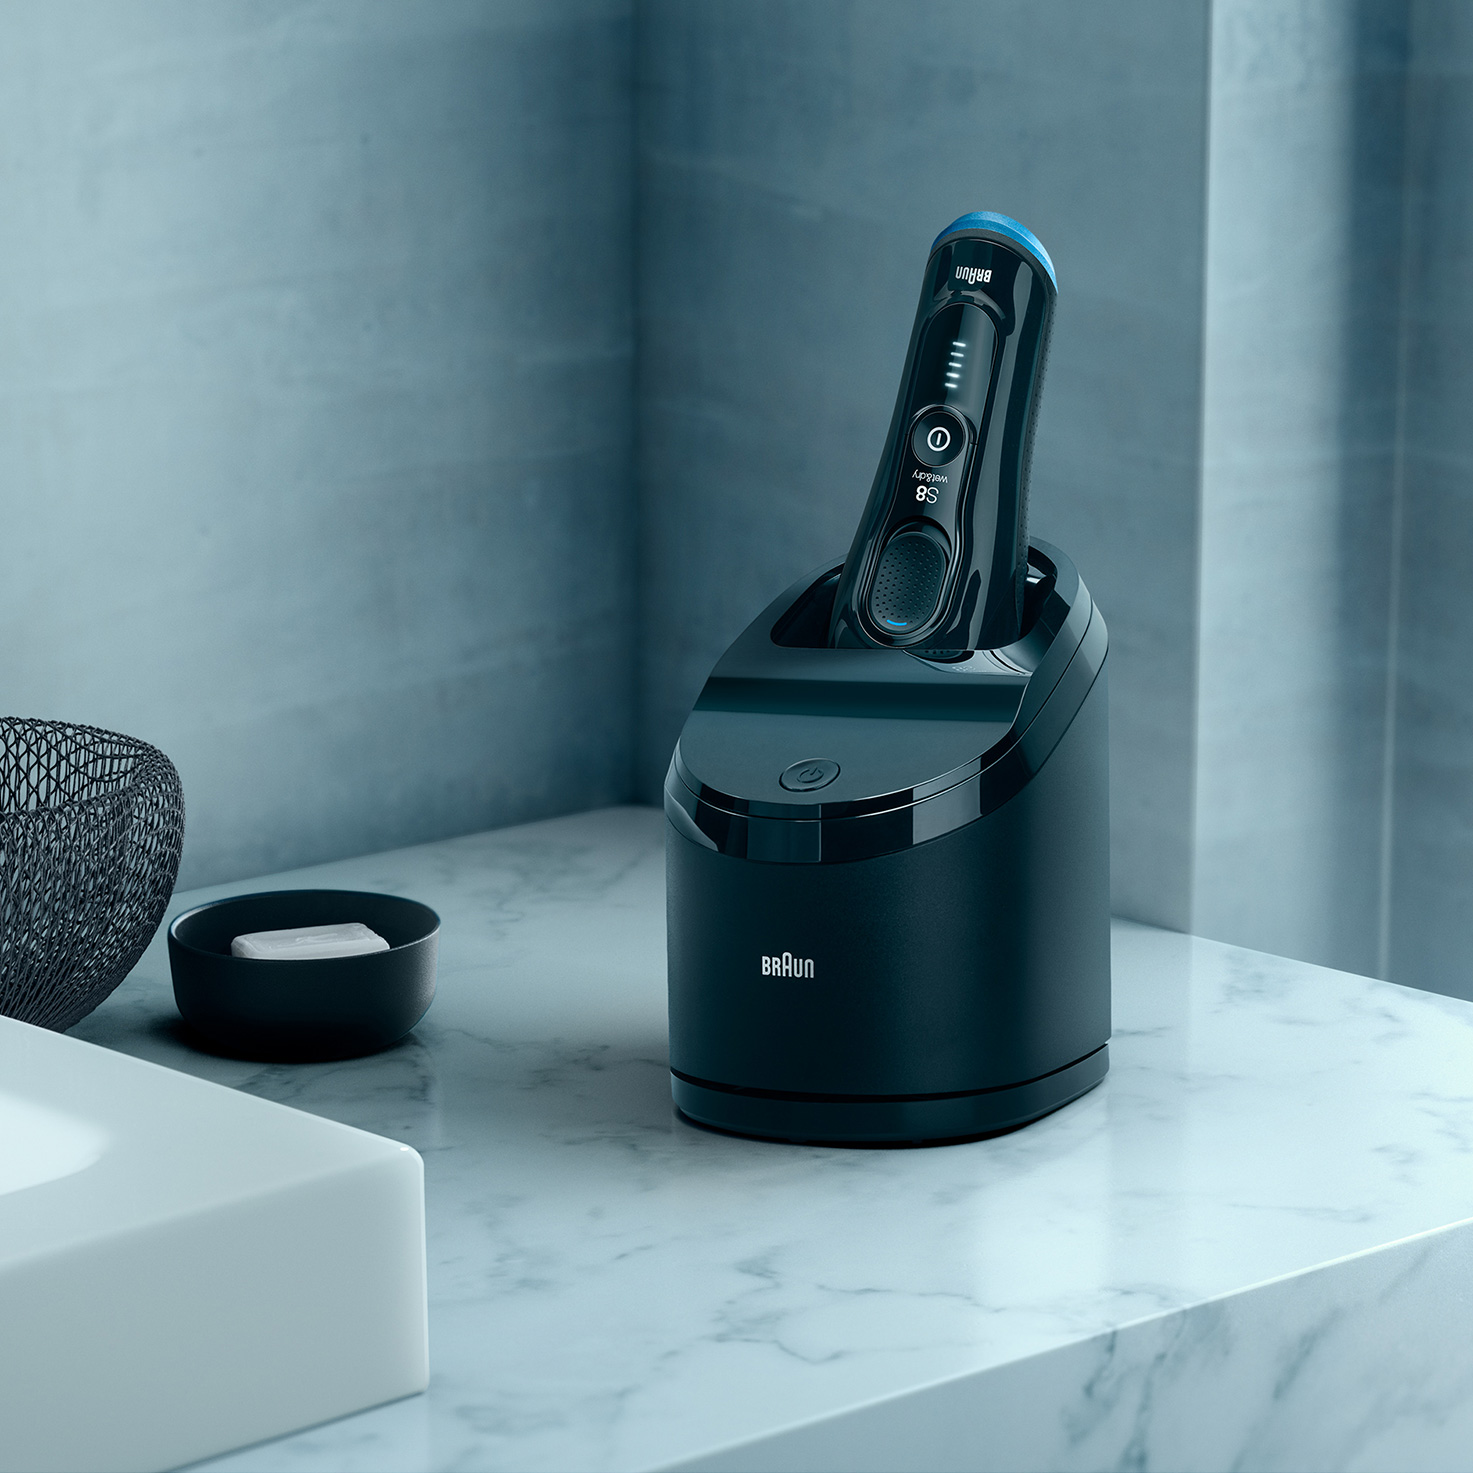 Series 8 8385cc shaver in Clean & Charge station